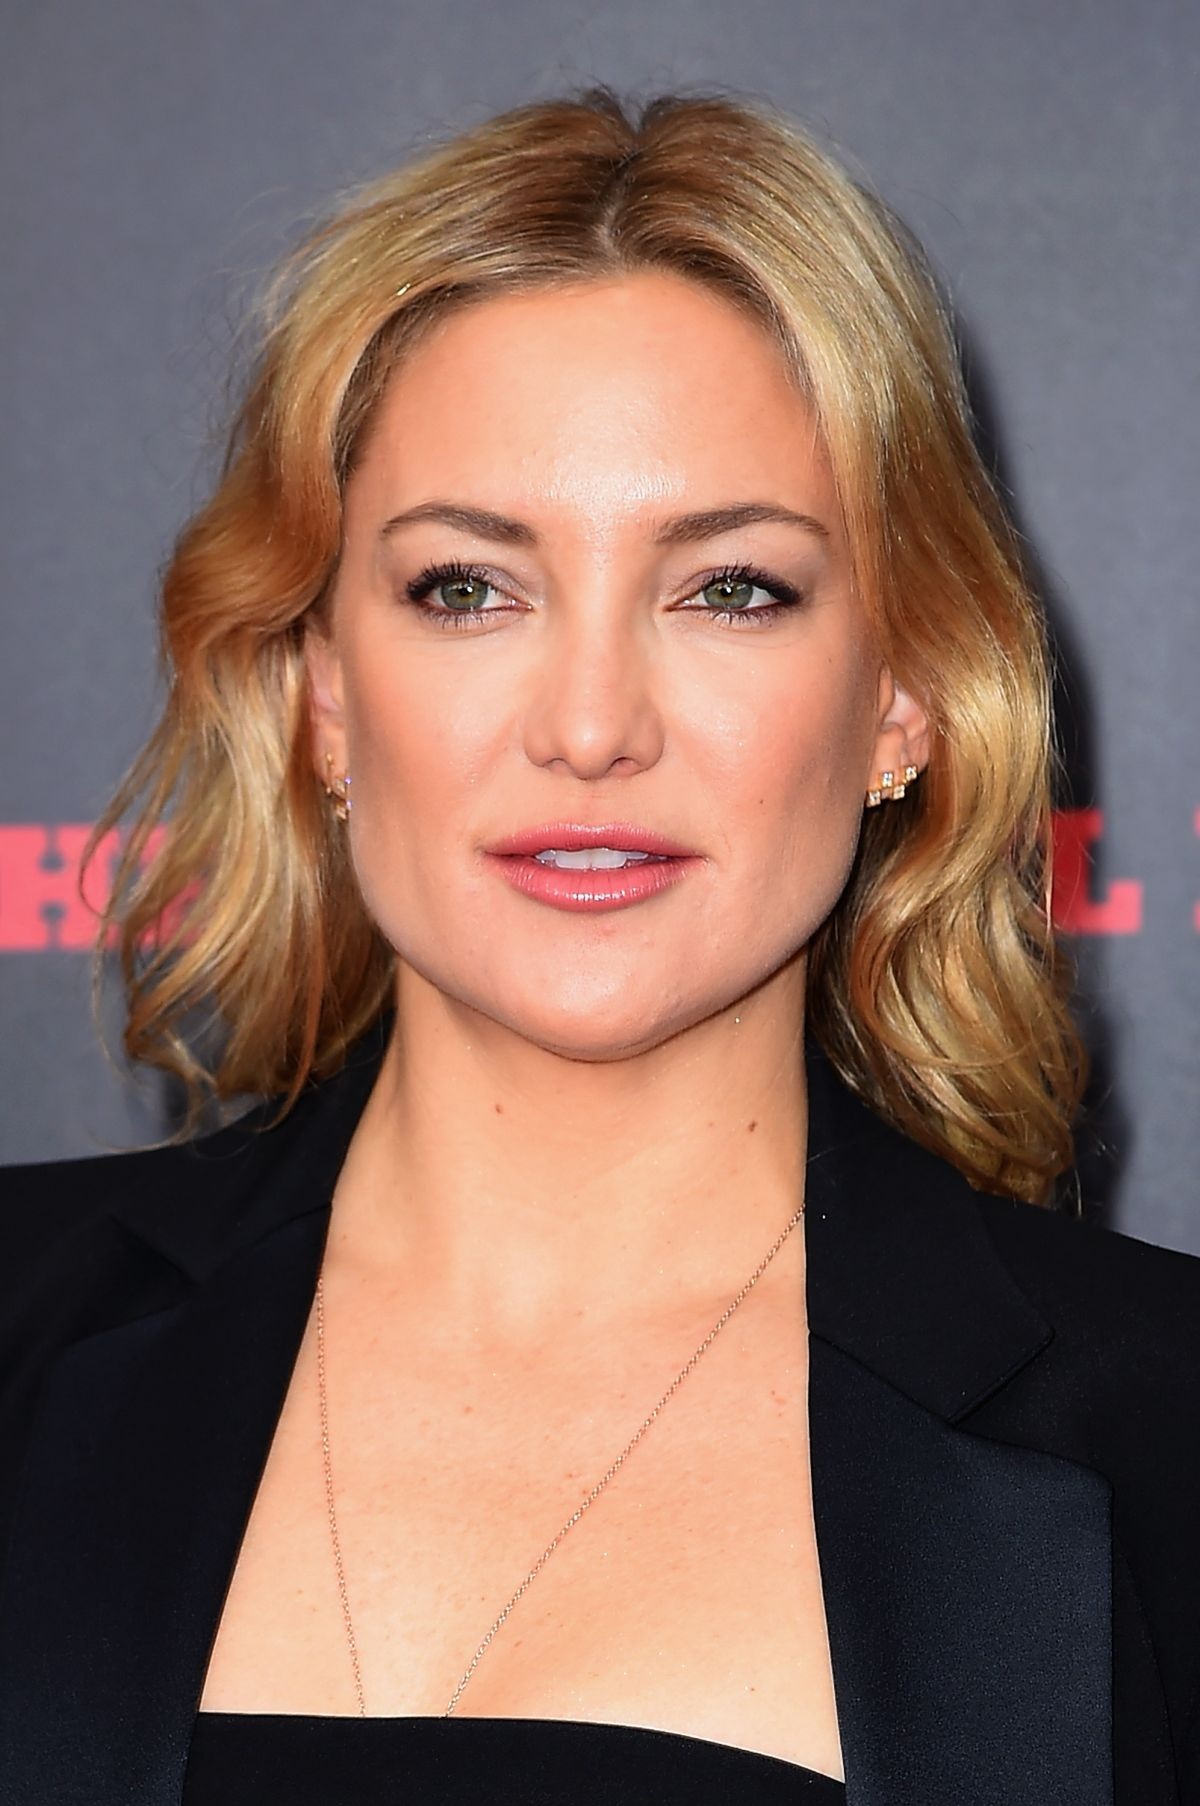 KATE HUDSON at The Hateful Eight Premiere in New York 12 ... Kate Hudson